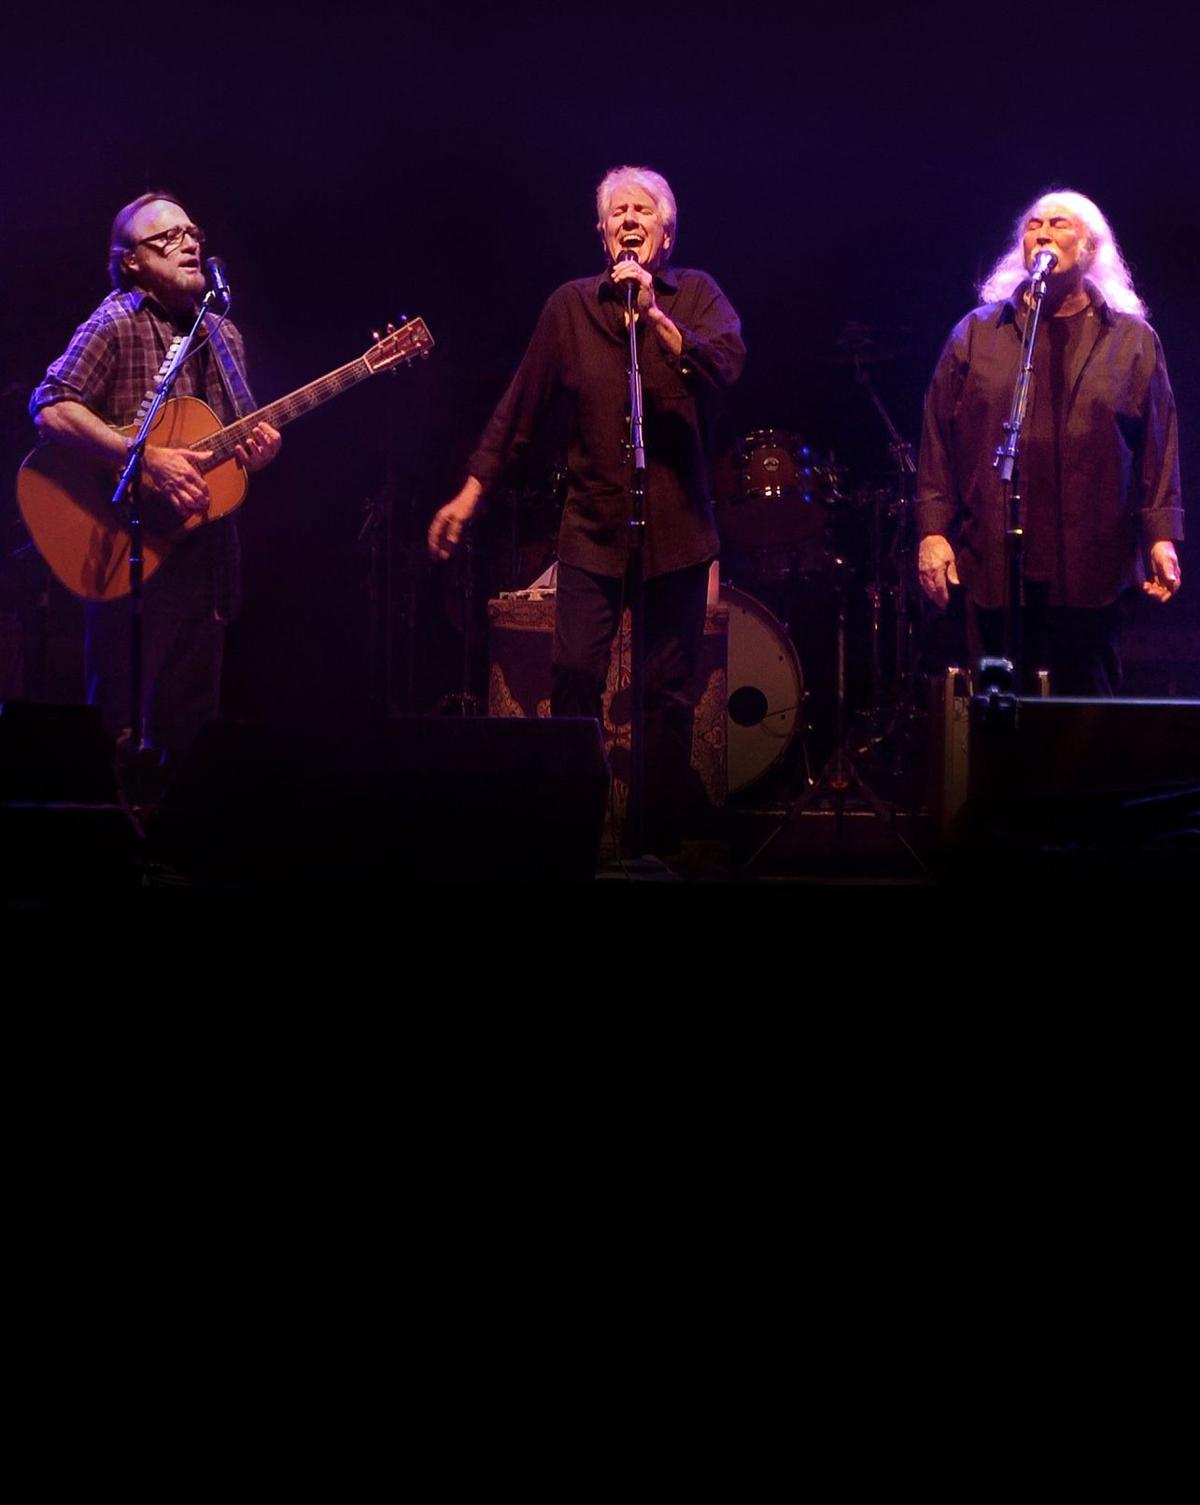 Crosby, Stills & Nash tour as 'three together' with a stop in North Charleston